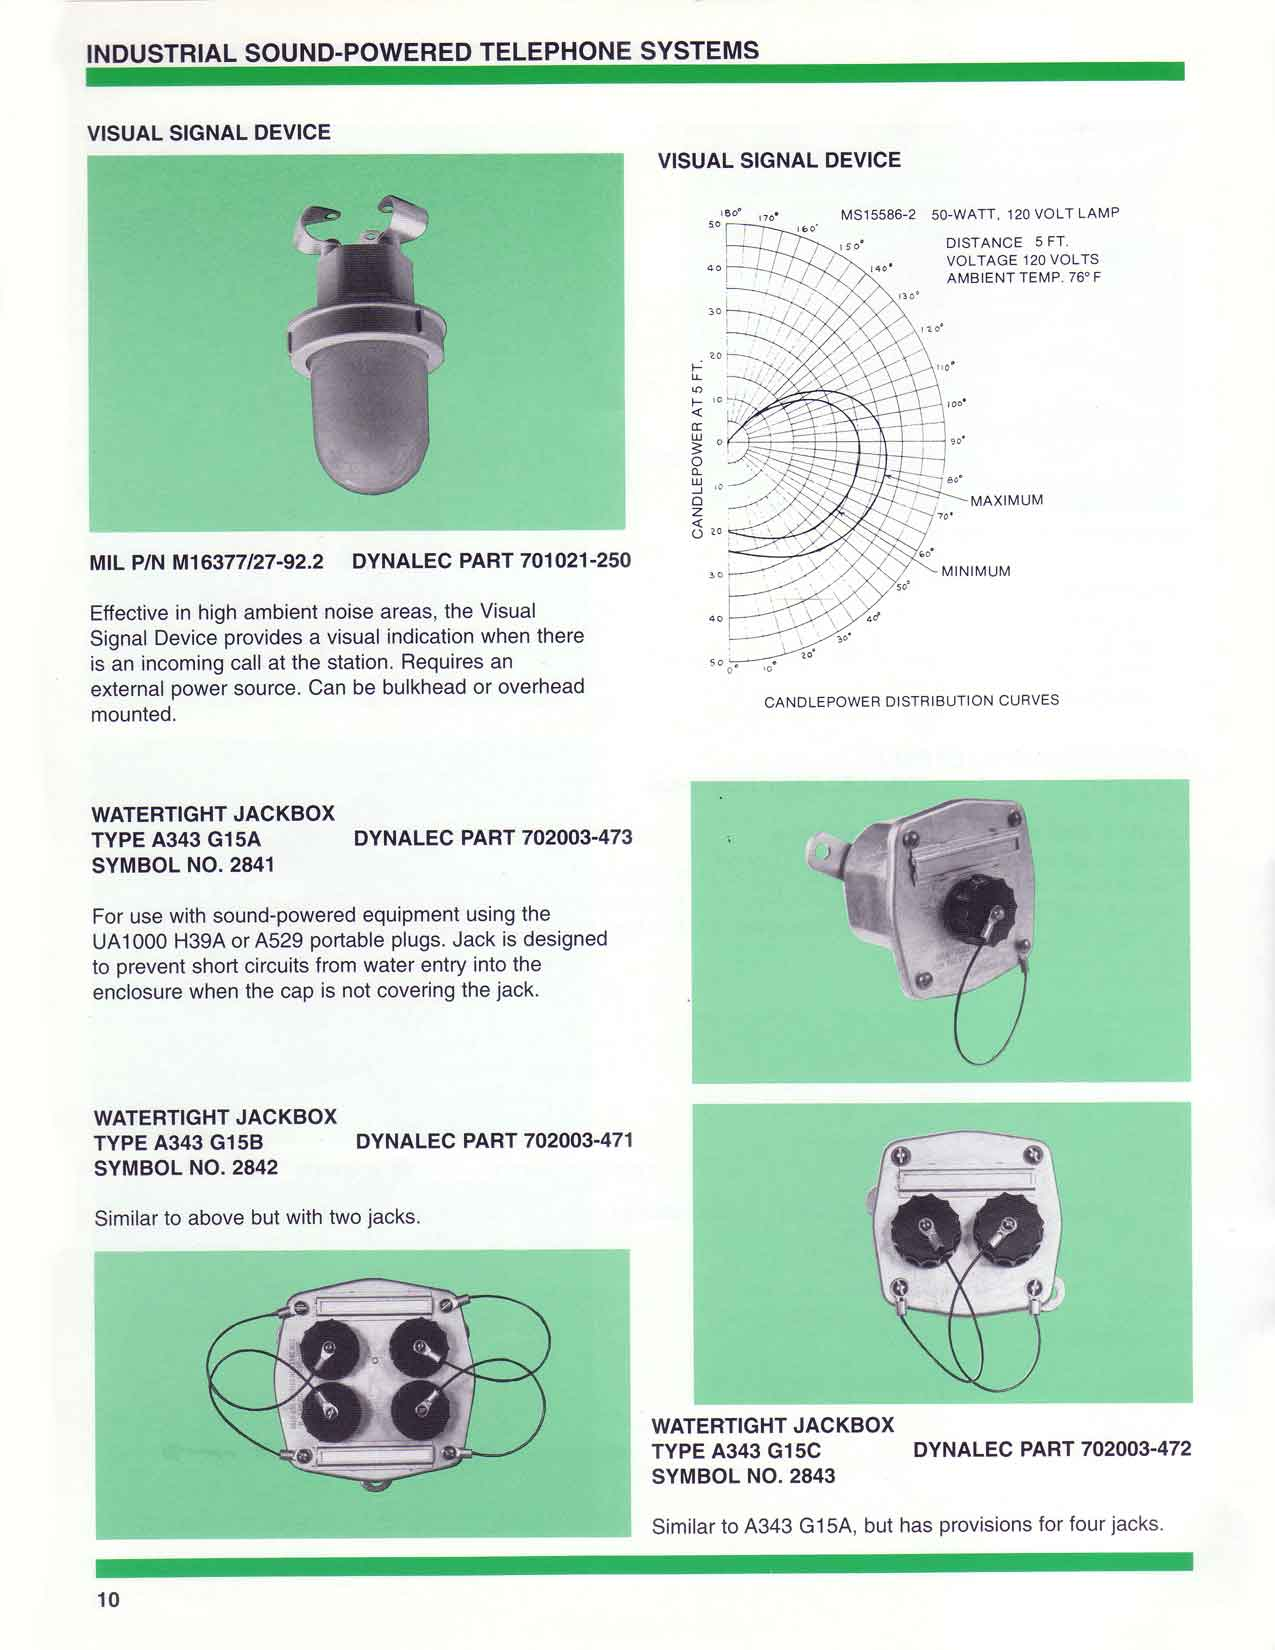 Industrial sound-powered telephone systems - signal device